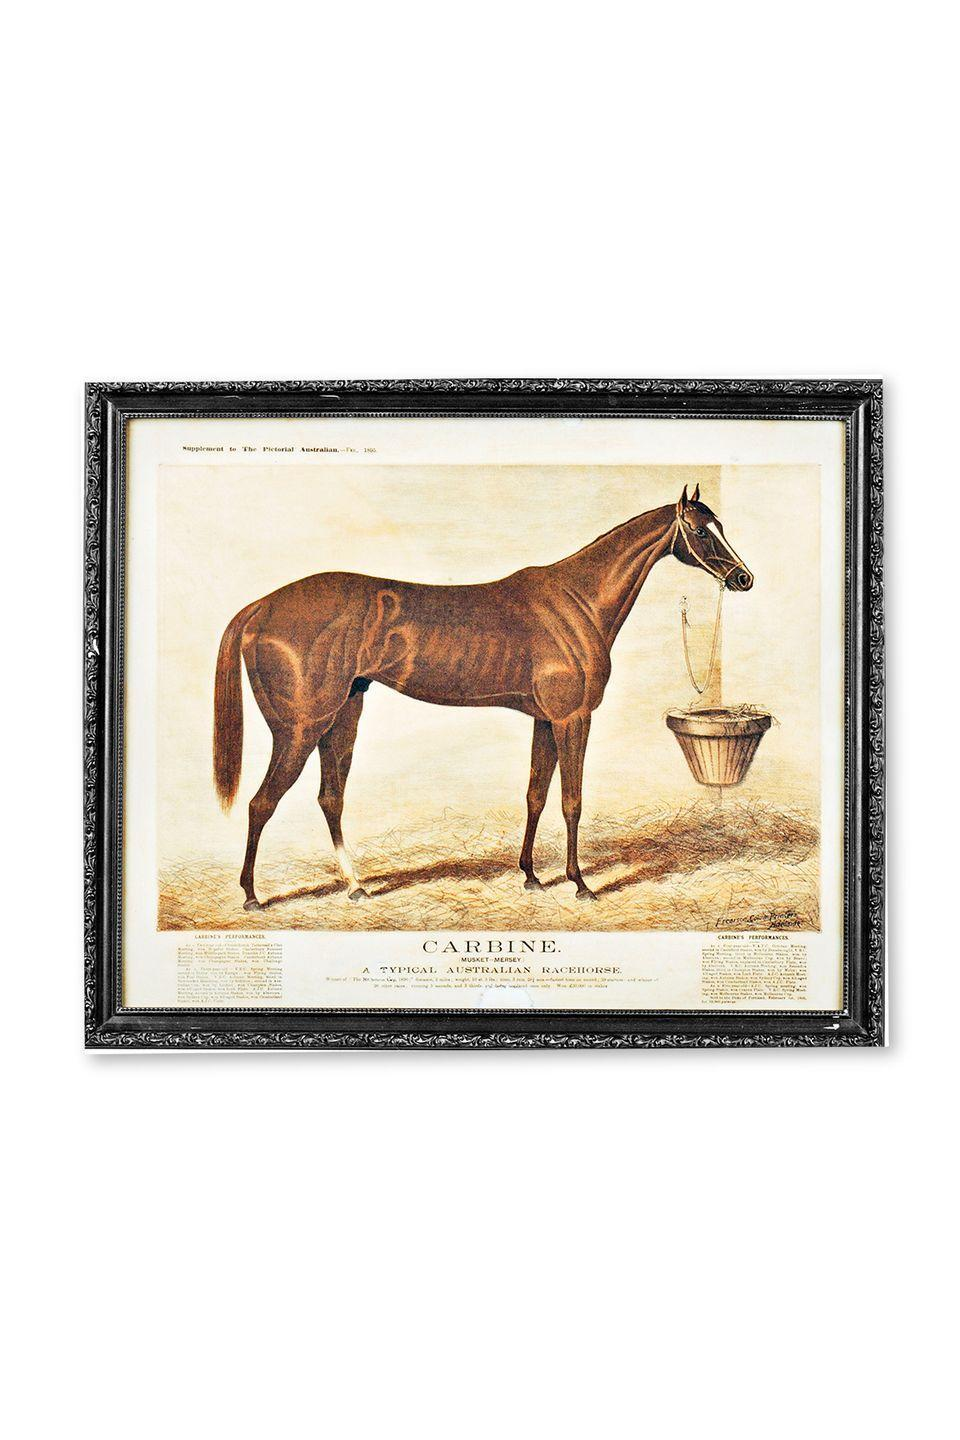 """<p><strong>What it was worth (2012):</strong> $225</p><p><strong>What it's worth now:</strong> $100</p><p>This vintage horse print would look perfect in any room boasting a farmhouse-inspired aesthetic.</p><p><strong>RELATED</strong>: <a href=""""https://www.goodhousekeeping.com/home/decorating-ideas/g30782403/farmhouse-decor-ideas/"""" rel=""""nofollow noopener"""" target=""""_blank"""" data-ylk=""""slk:25 Farmhouse Decor Ideas That Perfectly Blend Modern and Rustic Styles"""" class=""""link rapid-noclick-resp"""">25 Farmhouse Decor Ideas That Perfectly Blend Modern and Rustic Styles</a></p>"""